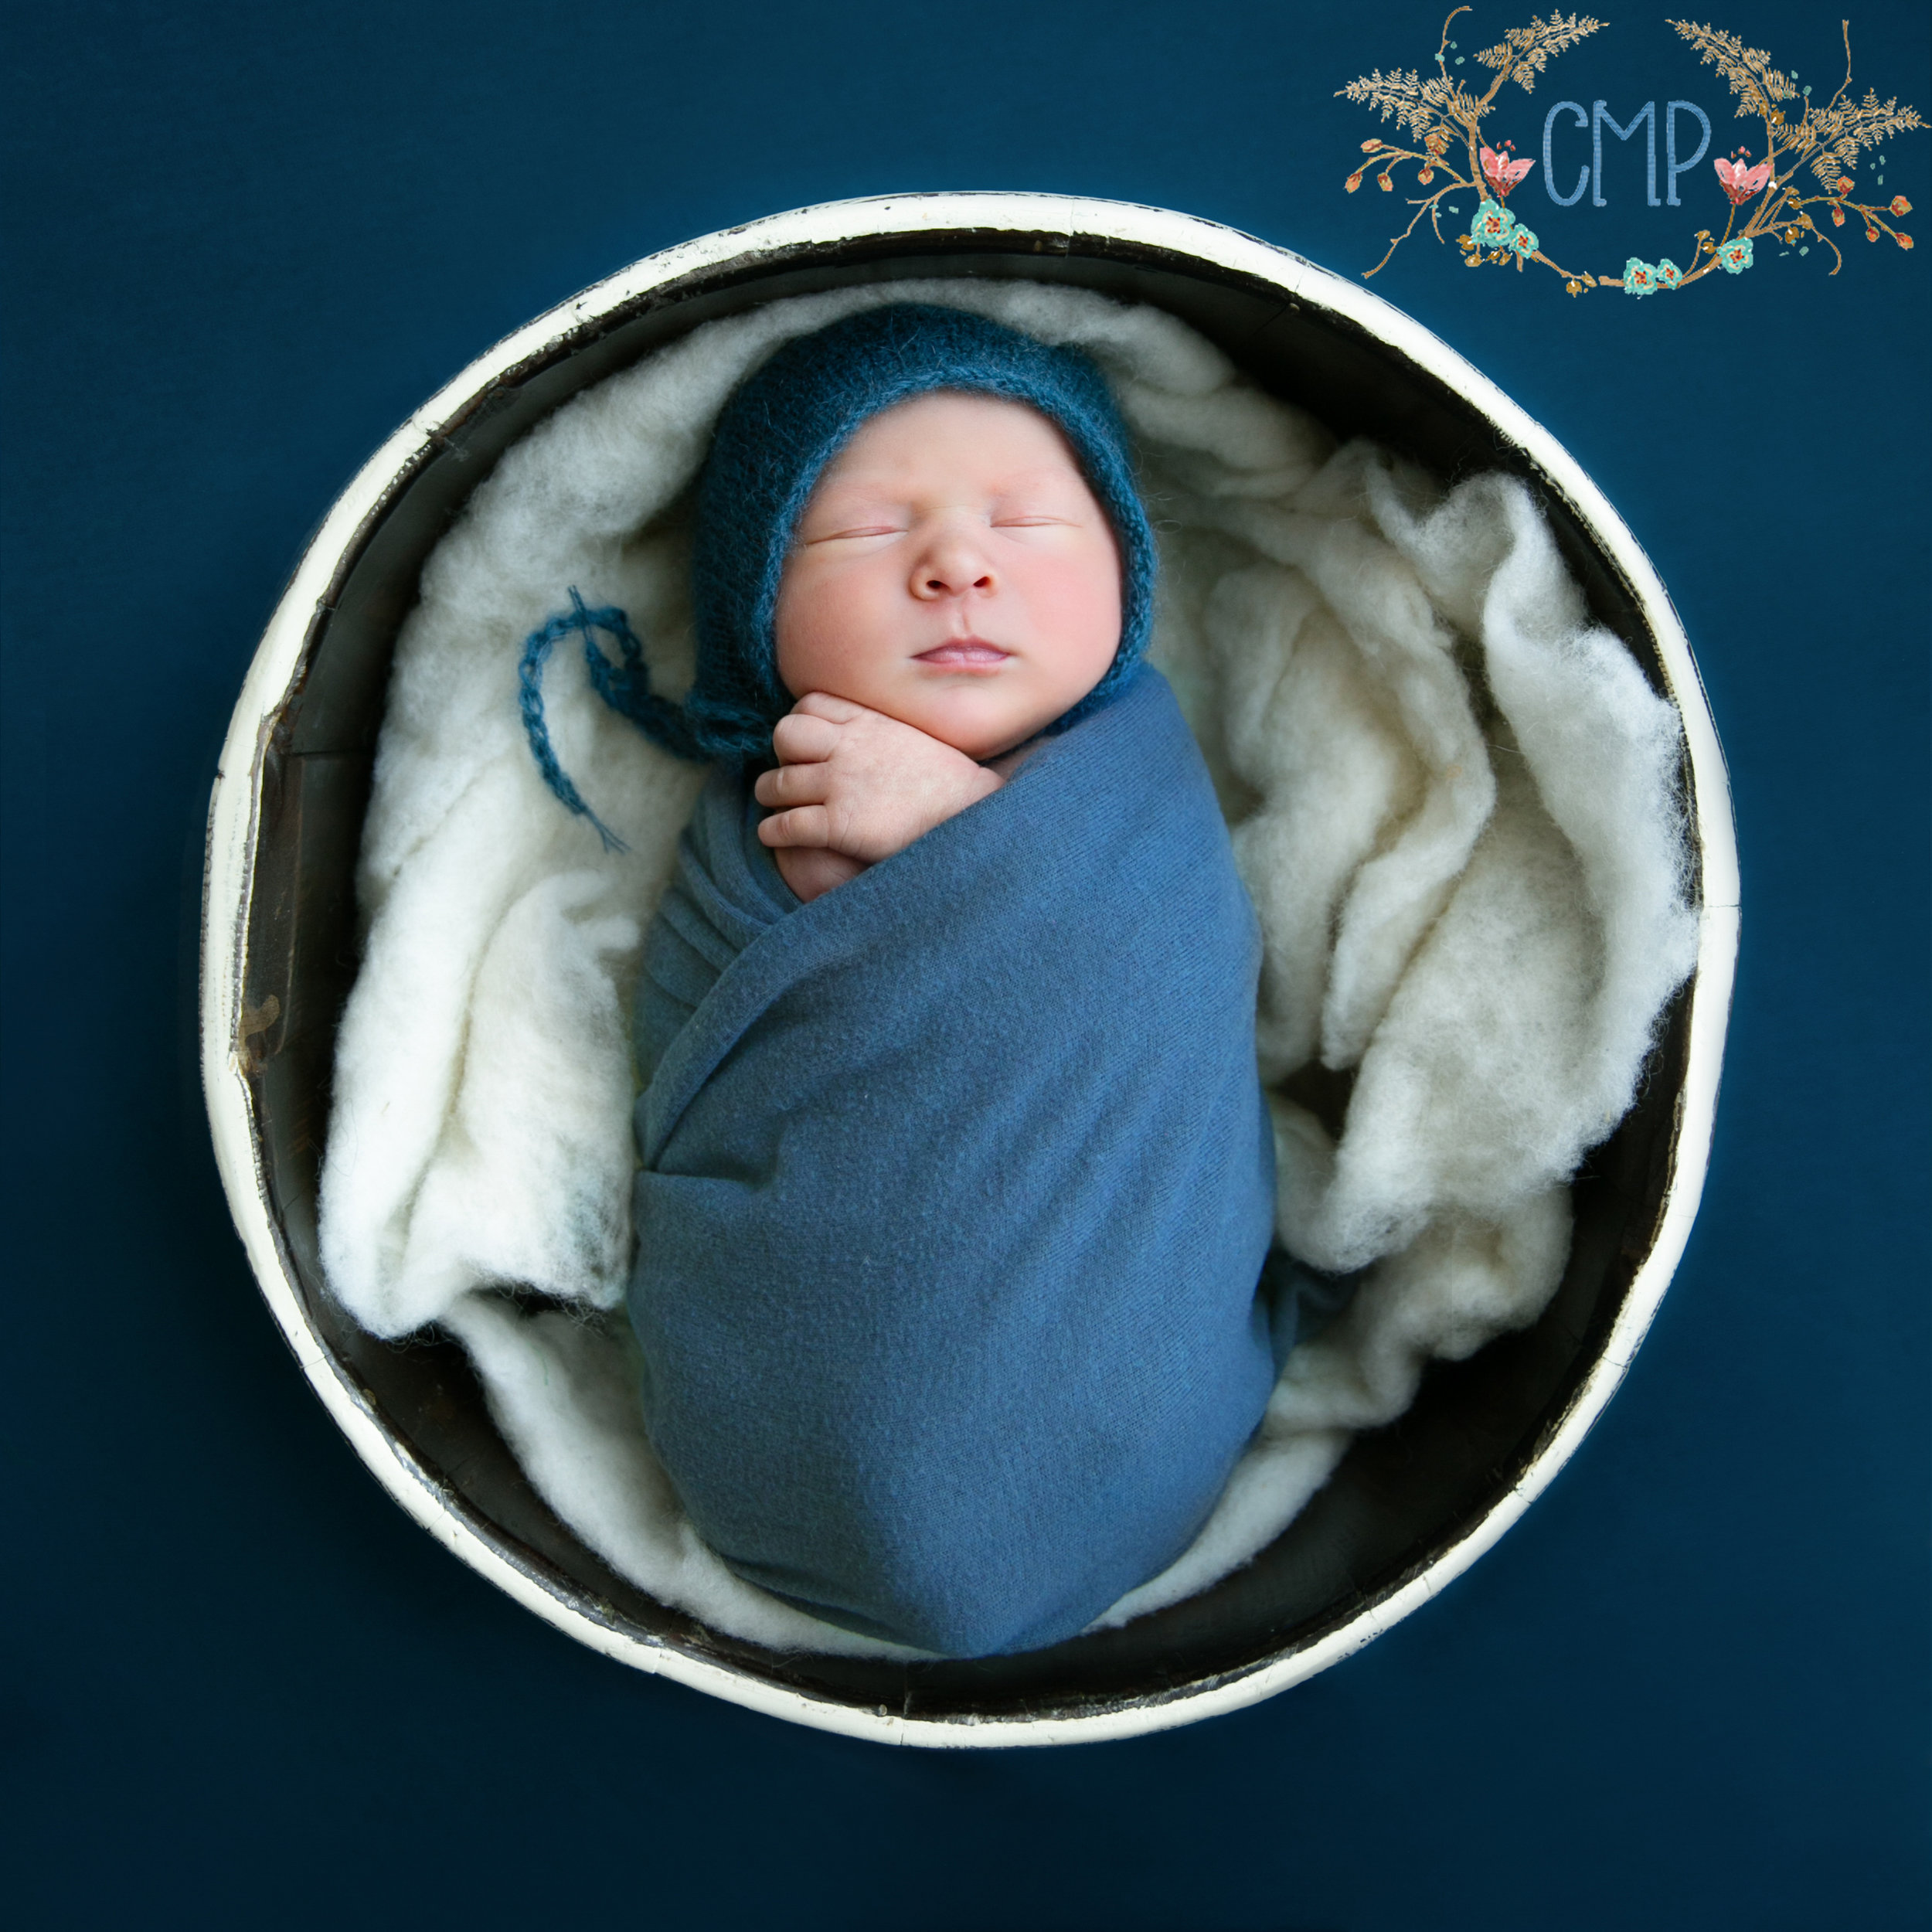 7_Sanford_Luke_newborn_761A9883-Edit-Edit.jpg